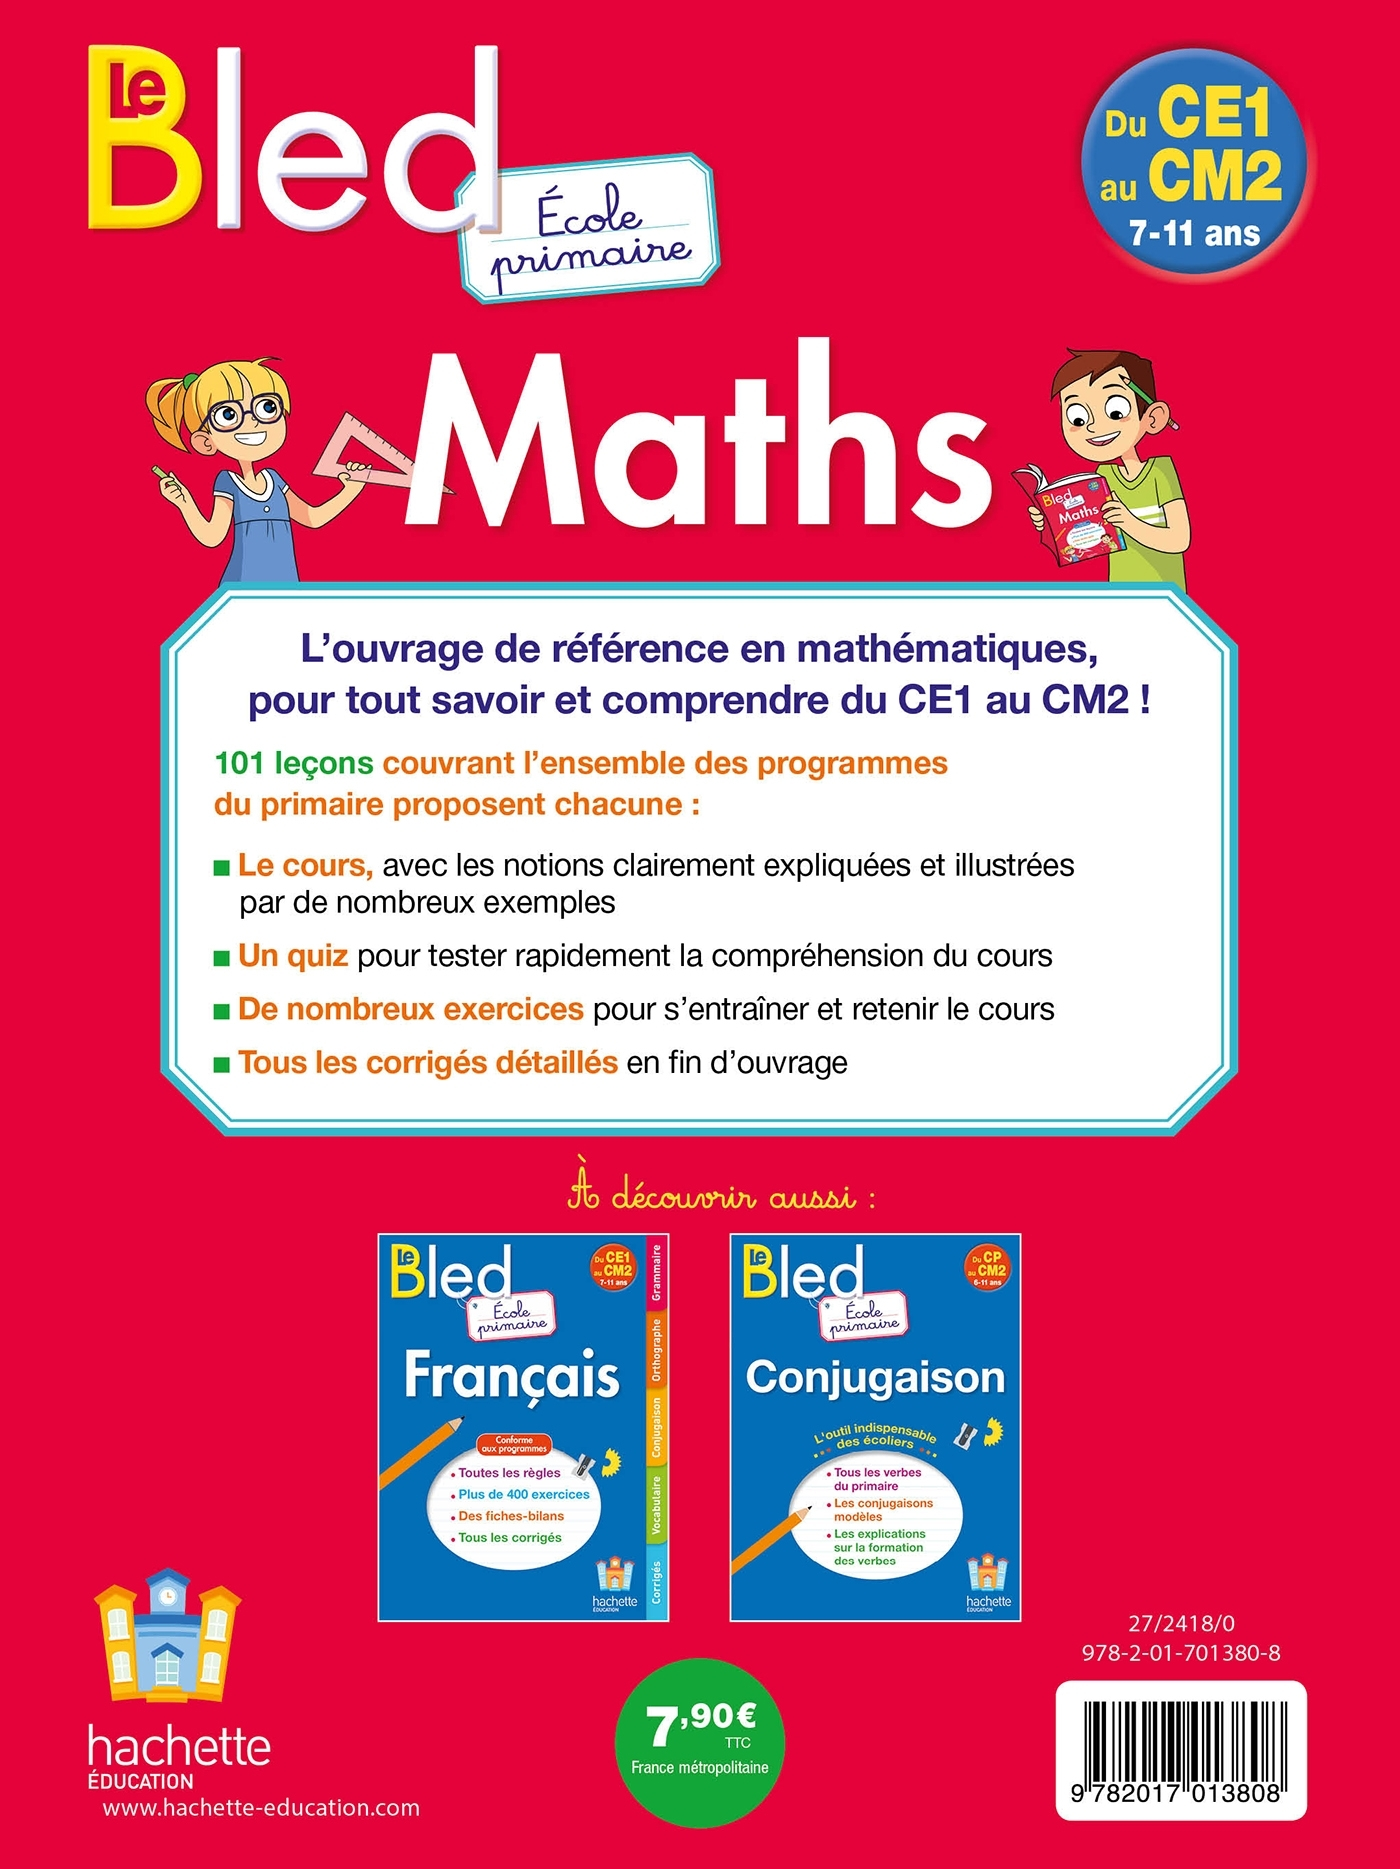 BLED ECOLE PRIMAIRE MATHS